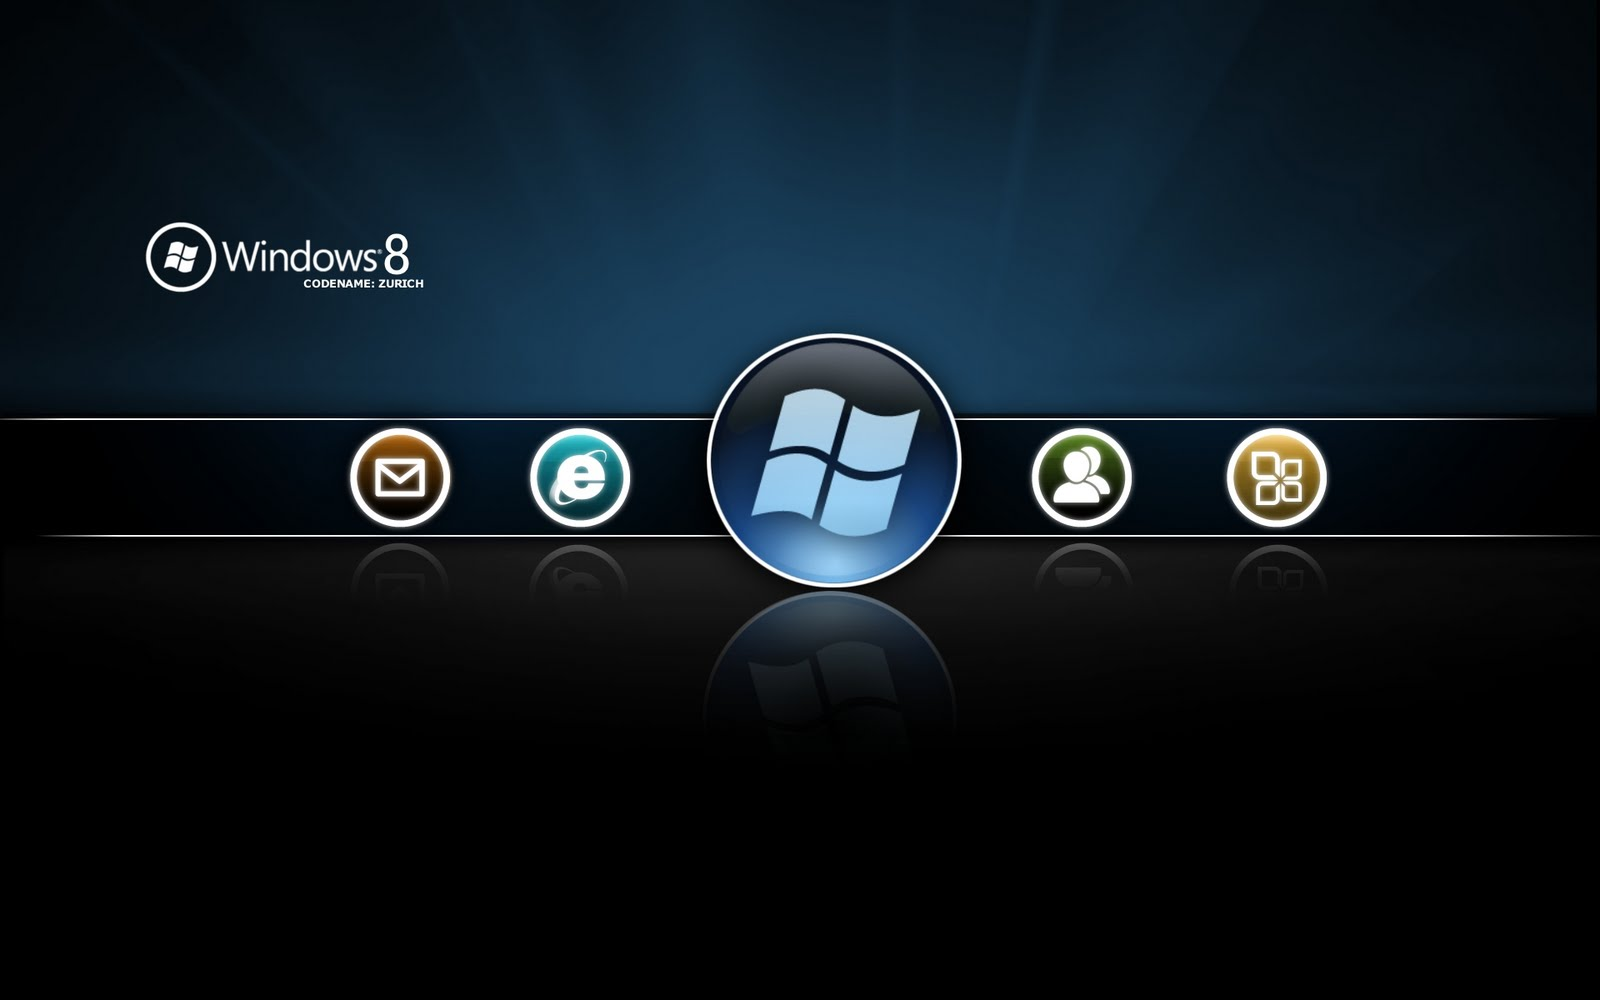 http://4.bp.blogspot.com/-2ln3_Jws21I/TxZQxDE4mZI/AAAAAAAAByc/RriWIZEM0cA/s1600/windows_8_beta_wallpaper.jpg